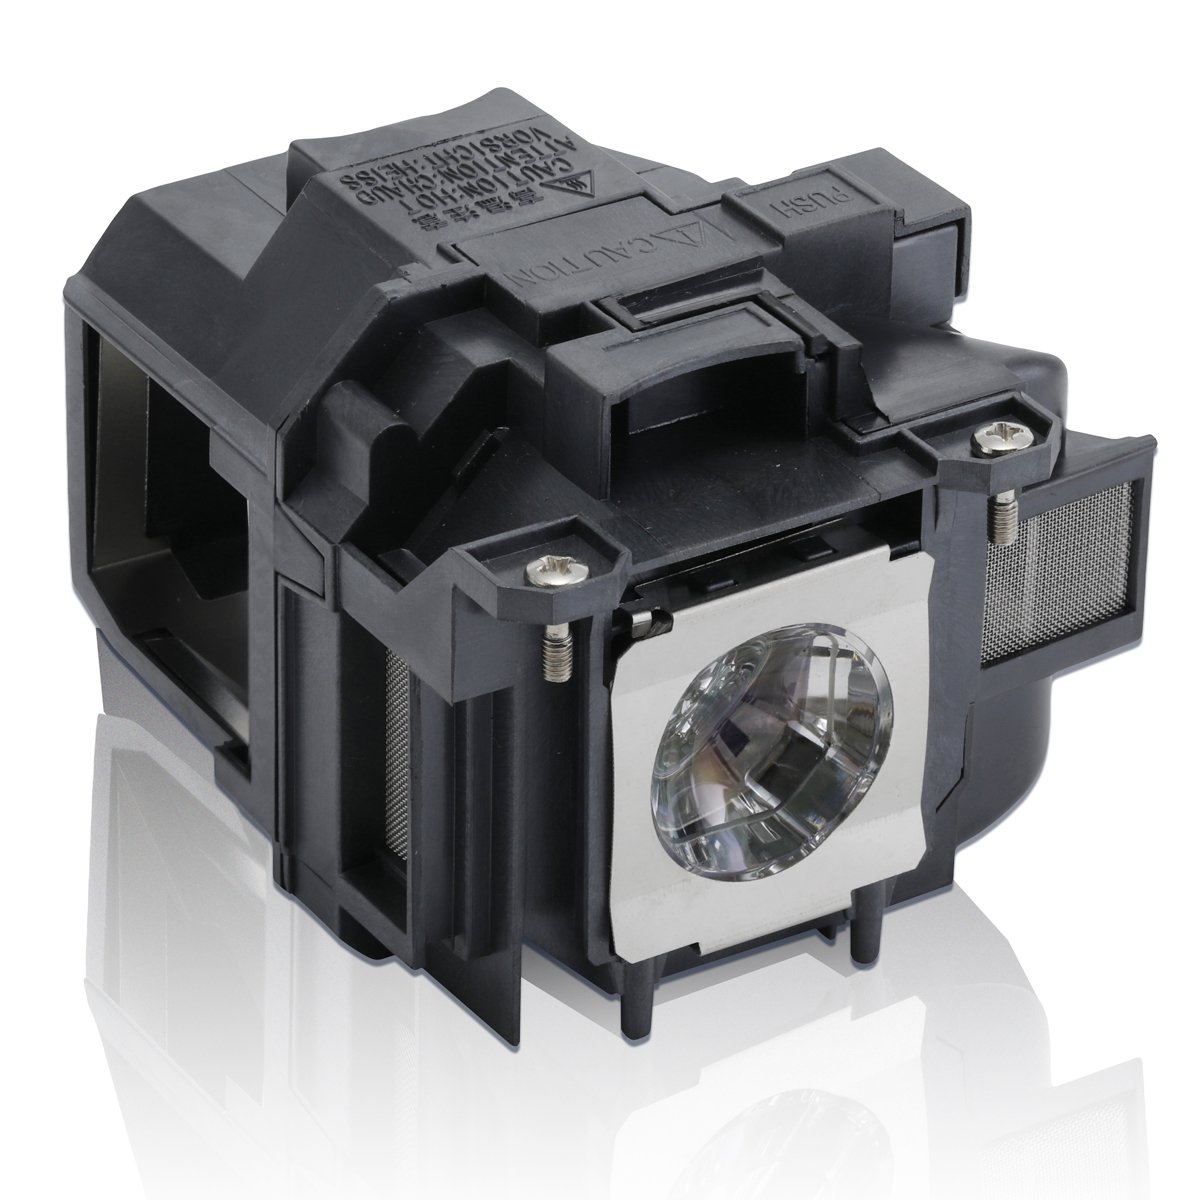 ESolid V13H010L88 Replacement Projector Lamp for Epson ELPLP88, EX9200 Pro EX7240 Pro EX5250 EX3240 EX5240 VS240 VS345 VS340, PowerLite Home Cinema 640/1040/ 2040/2045/ 740HD, PowerLite 99WH/ S27